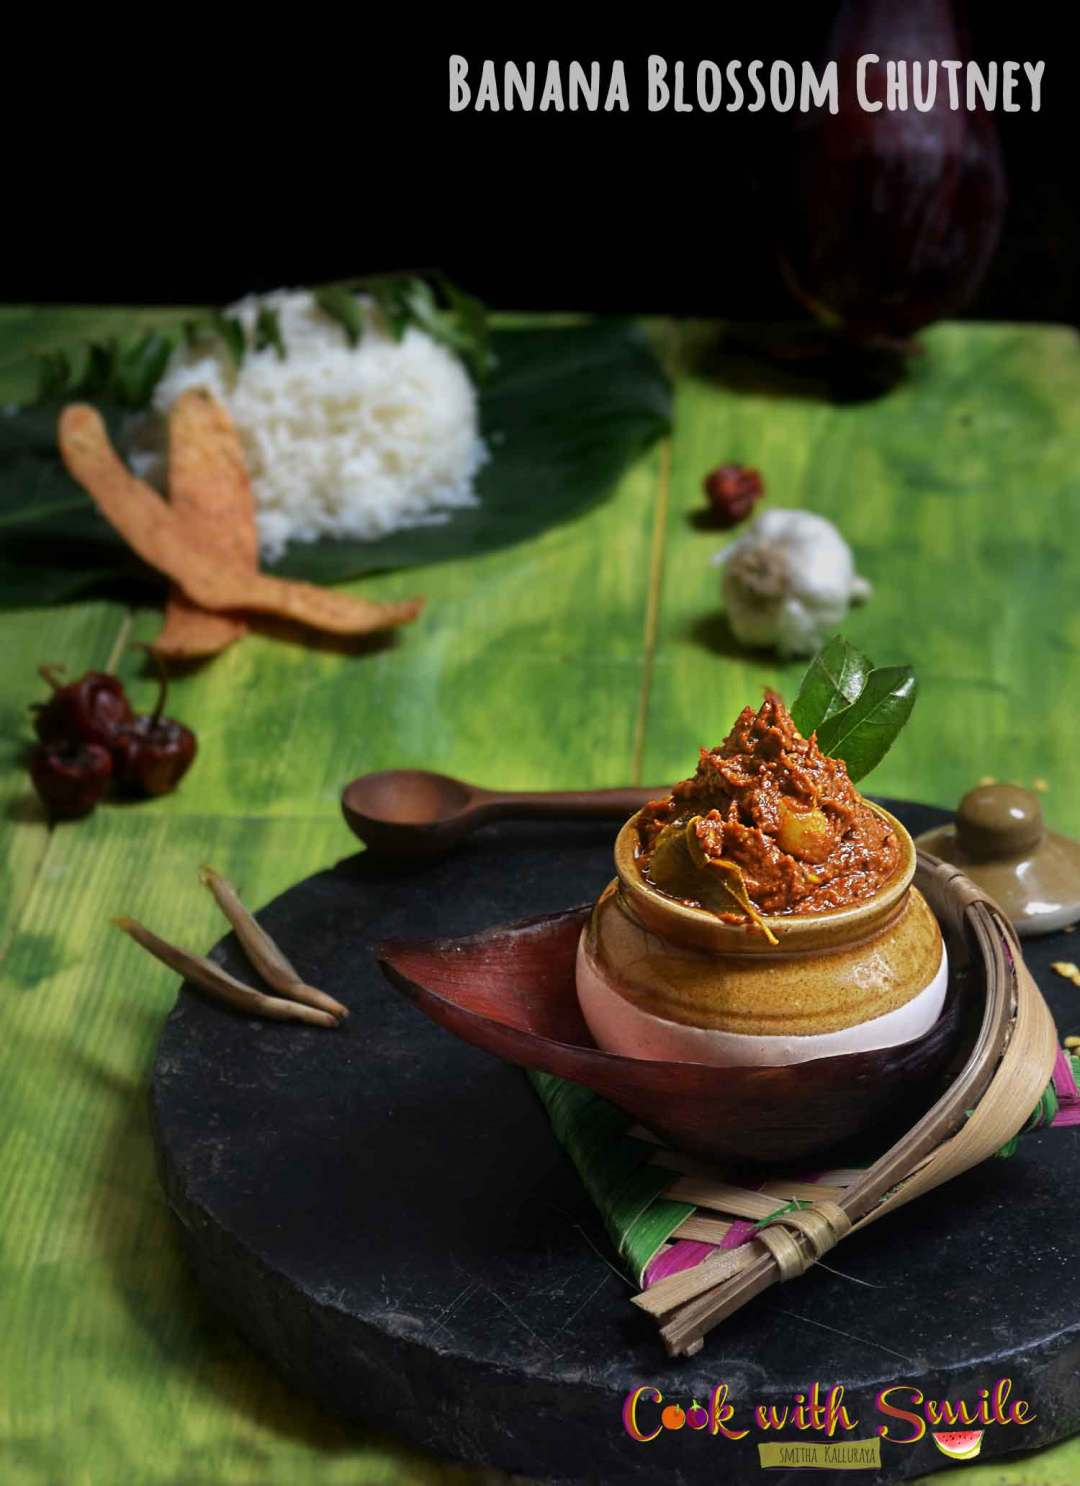 BANANA FLOWER CHUTNEY